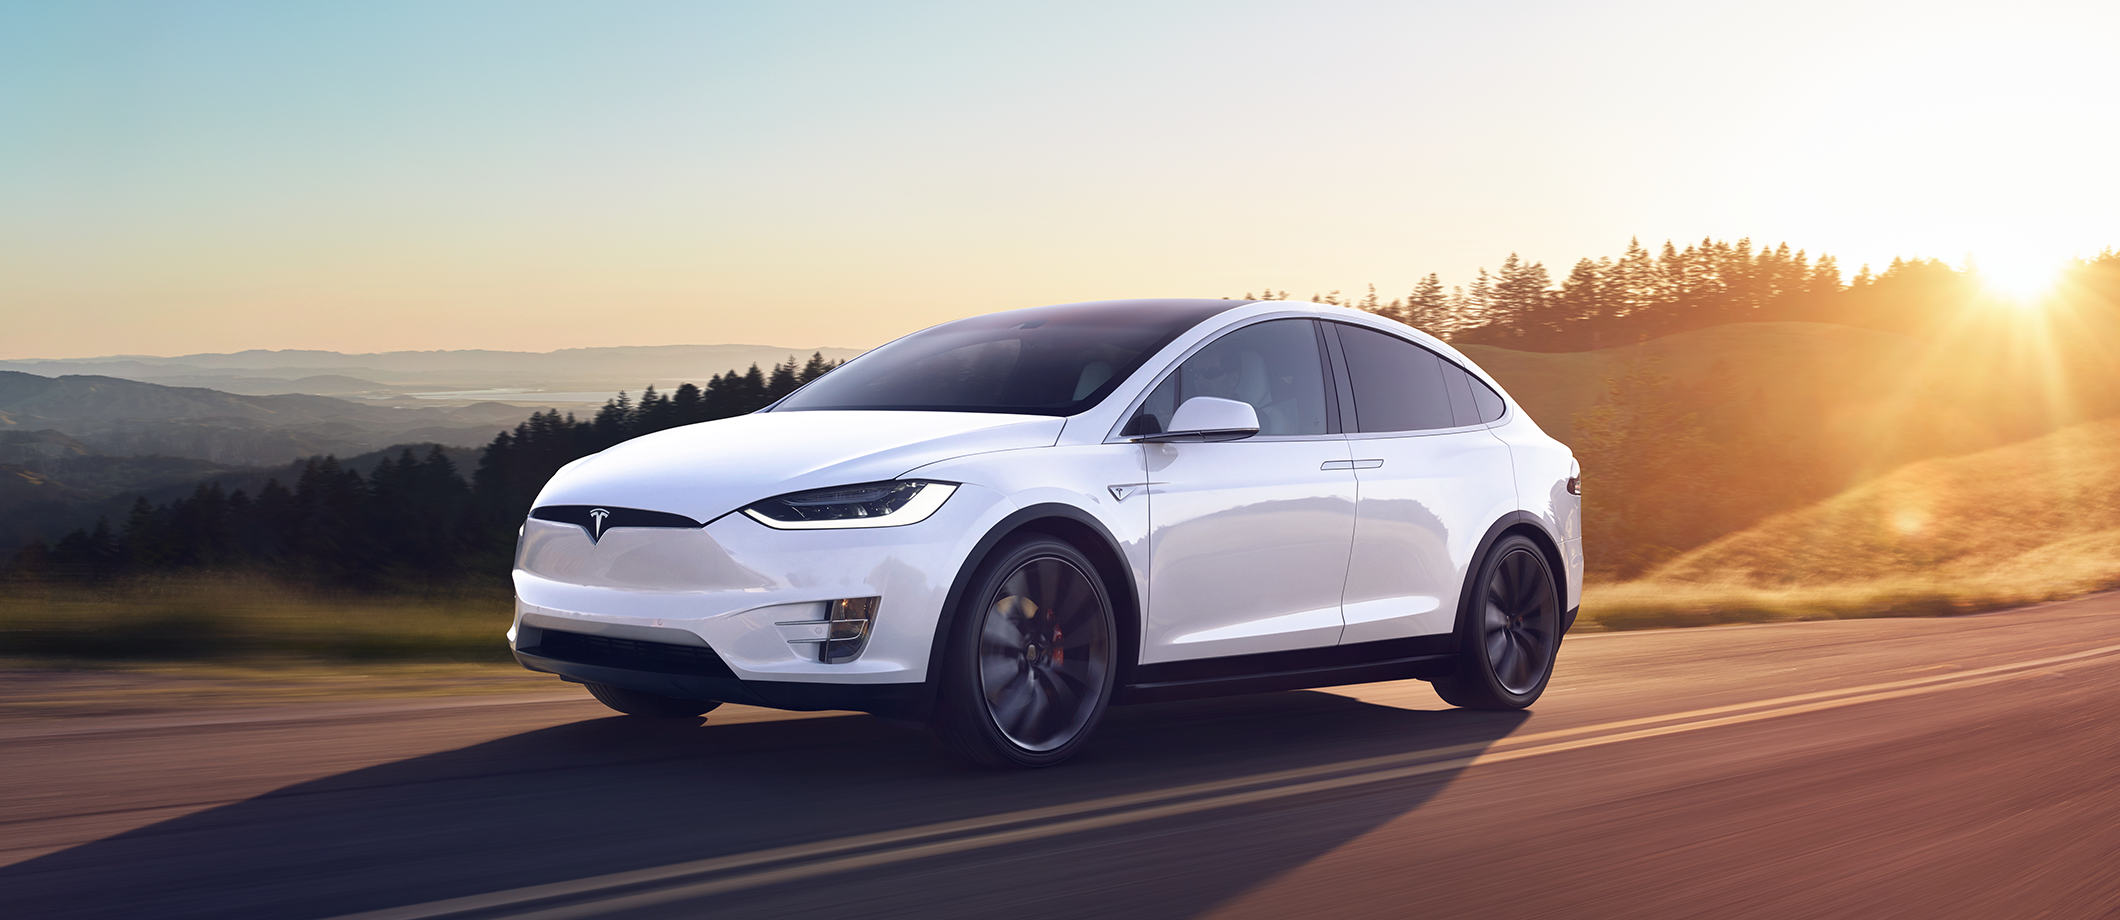 New Model Perspective Tesla Model X Premier Financial